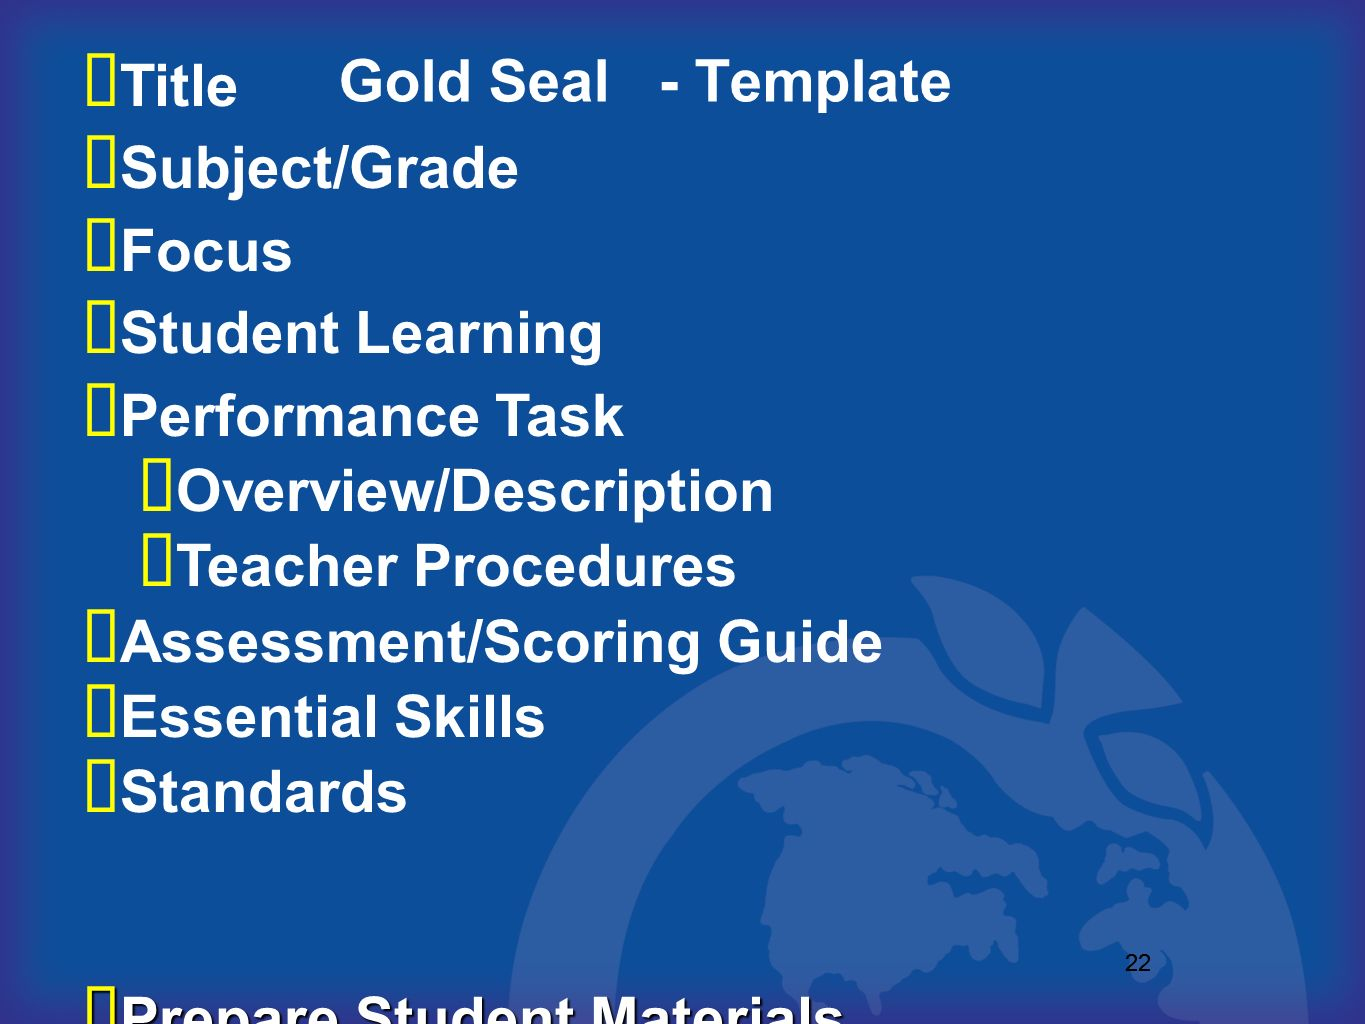 Overview/Description Teacher Procedures Assessment/Scoring Guide